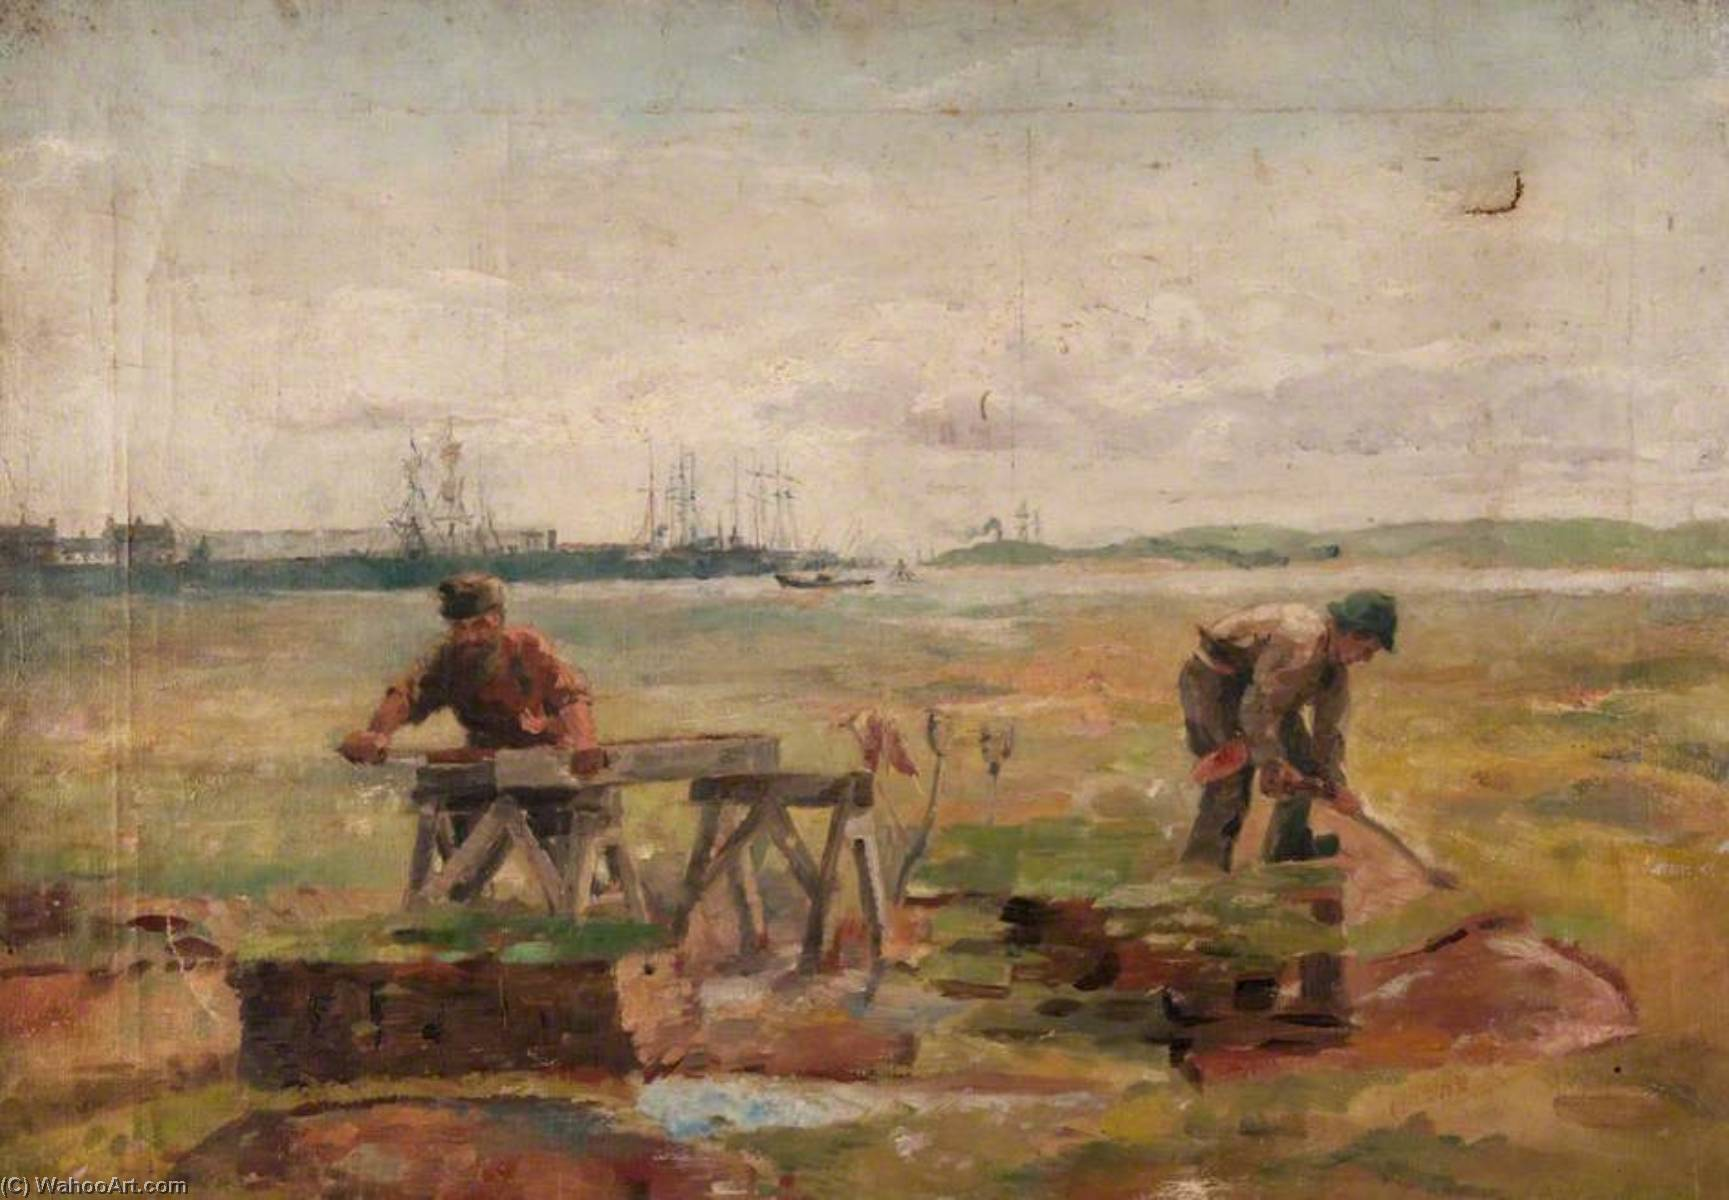 Two Workmen with a Background of Sailing Ships, Oil On Canvas by John Elliot Maguire